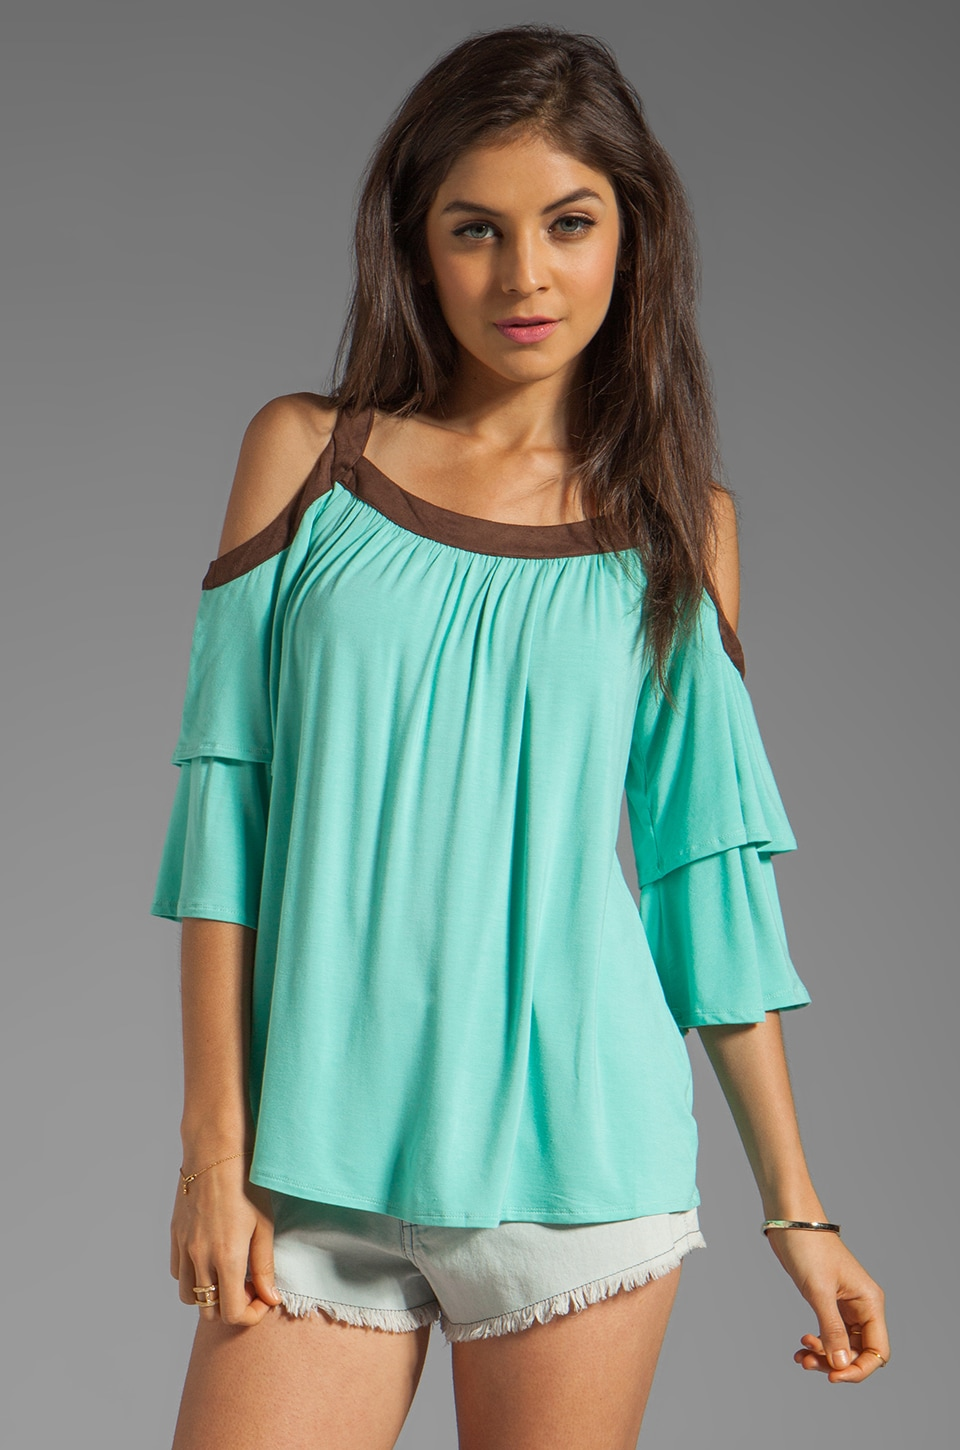 VAVA by Joy Han Piper Top in Mint